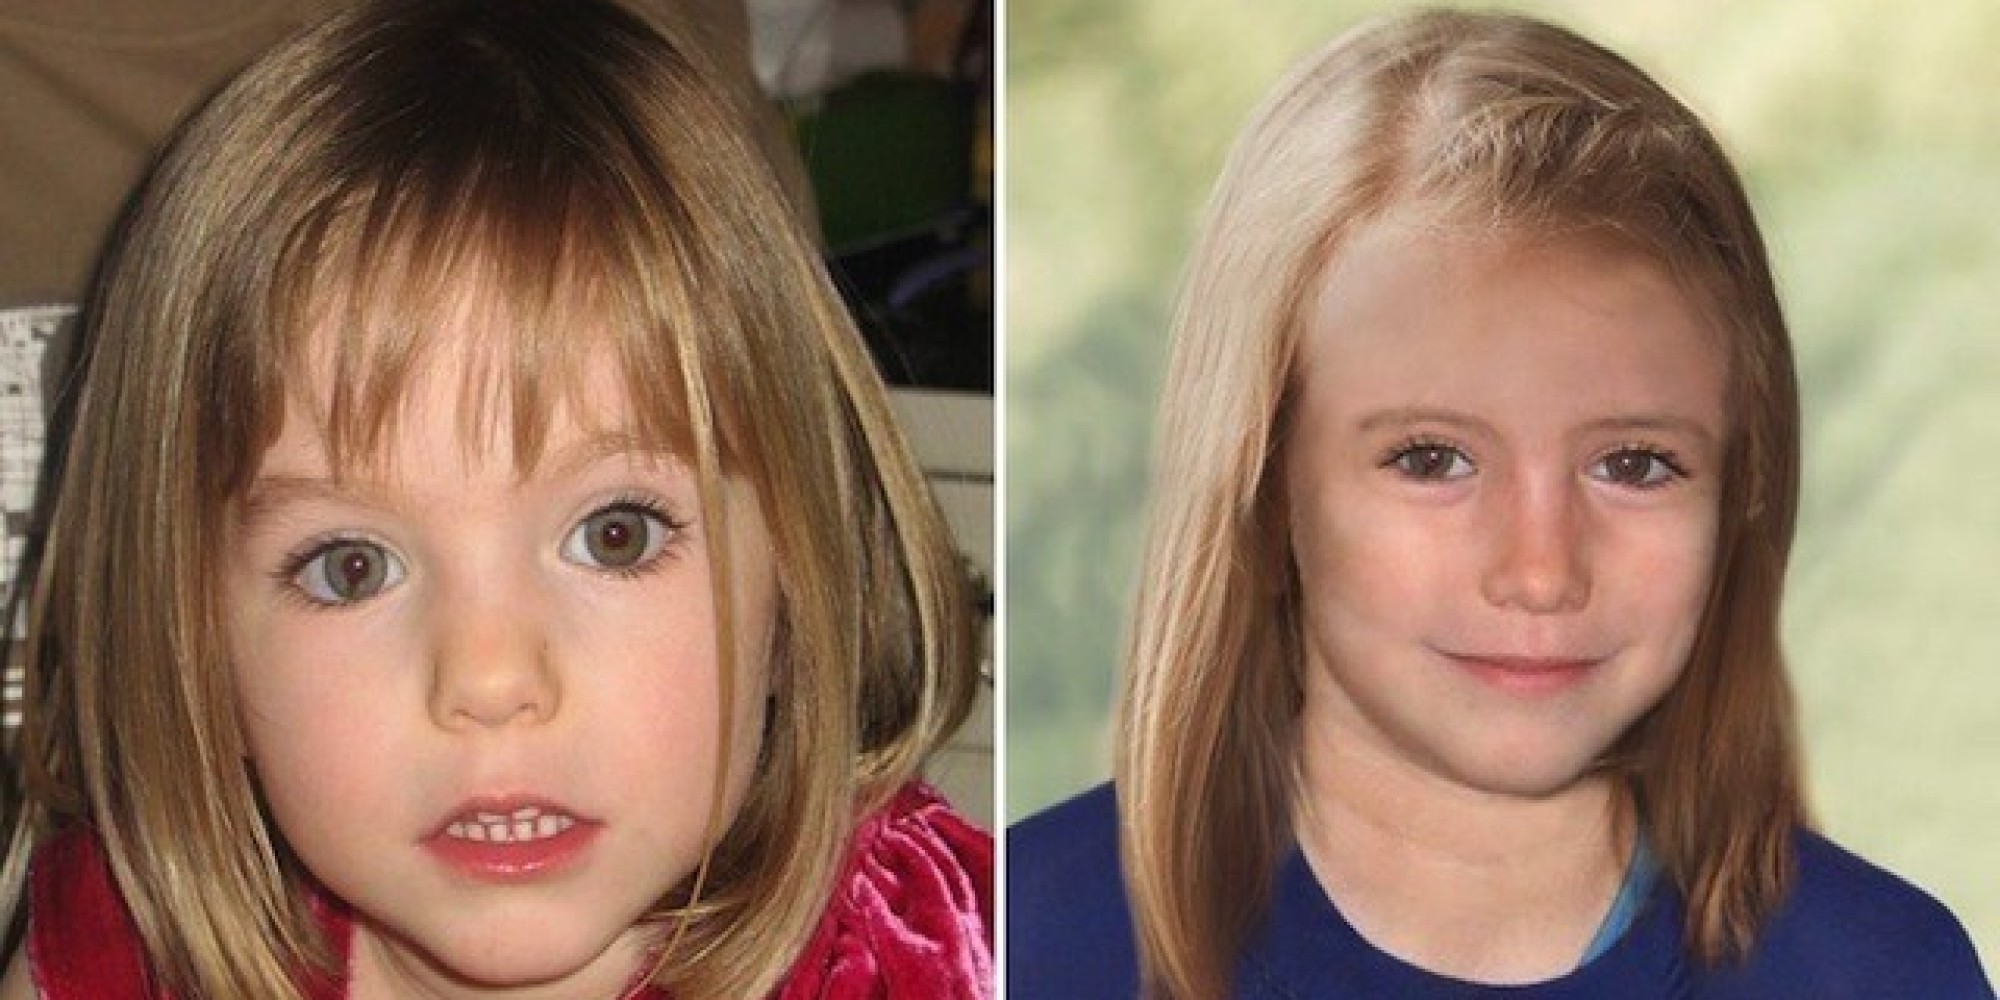 Madeleine McCann Image: Madeleine McCann Sighting: Paraguay Police Search After